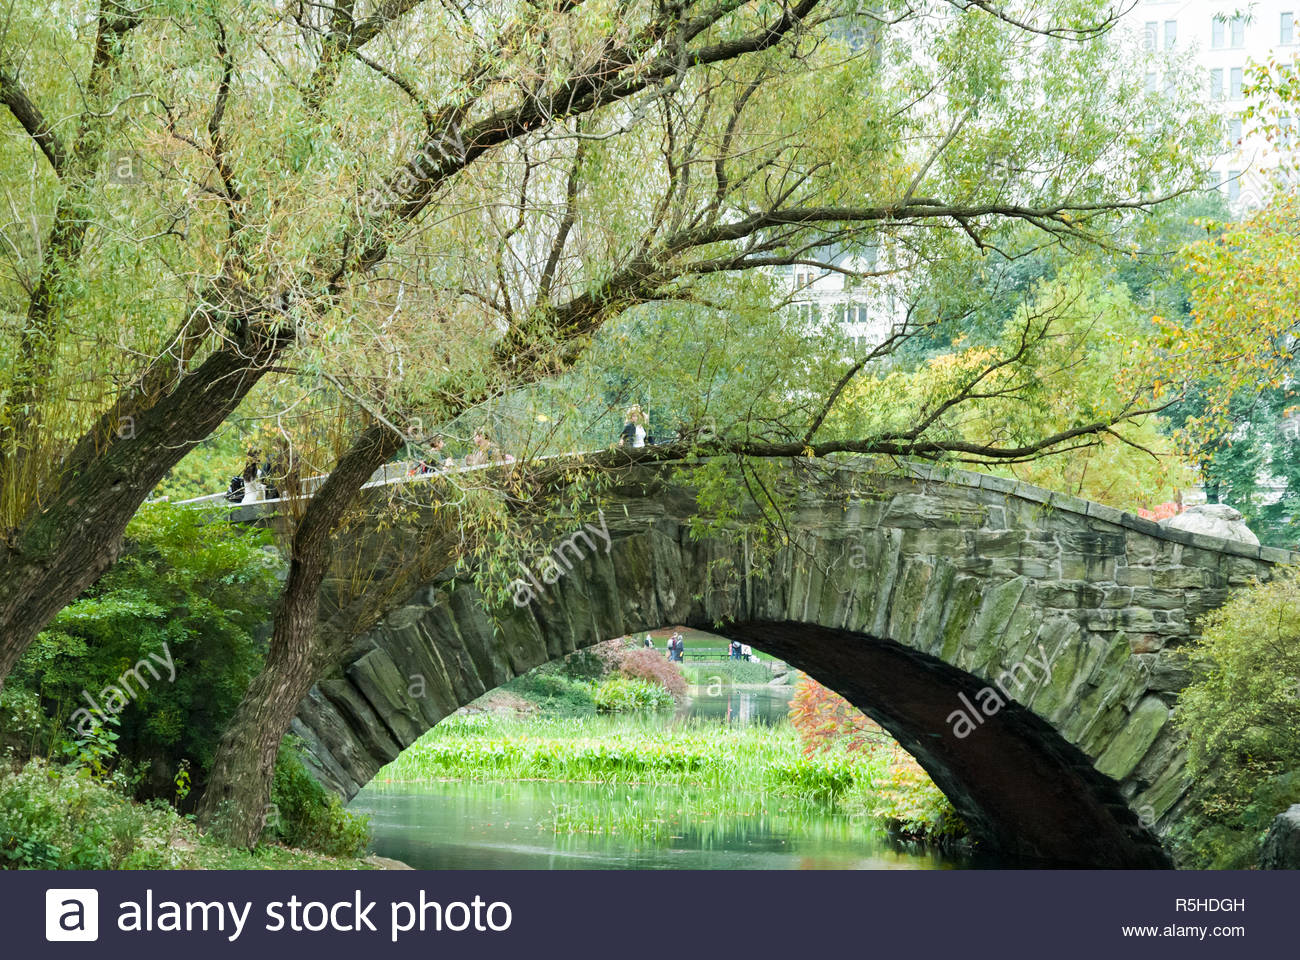 New York, New York, USA - October 25, 2008: Pedestrians in and around the Gapstow Bridge in Central Park - Stock Image